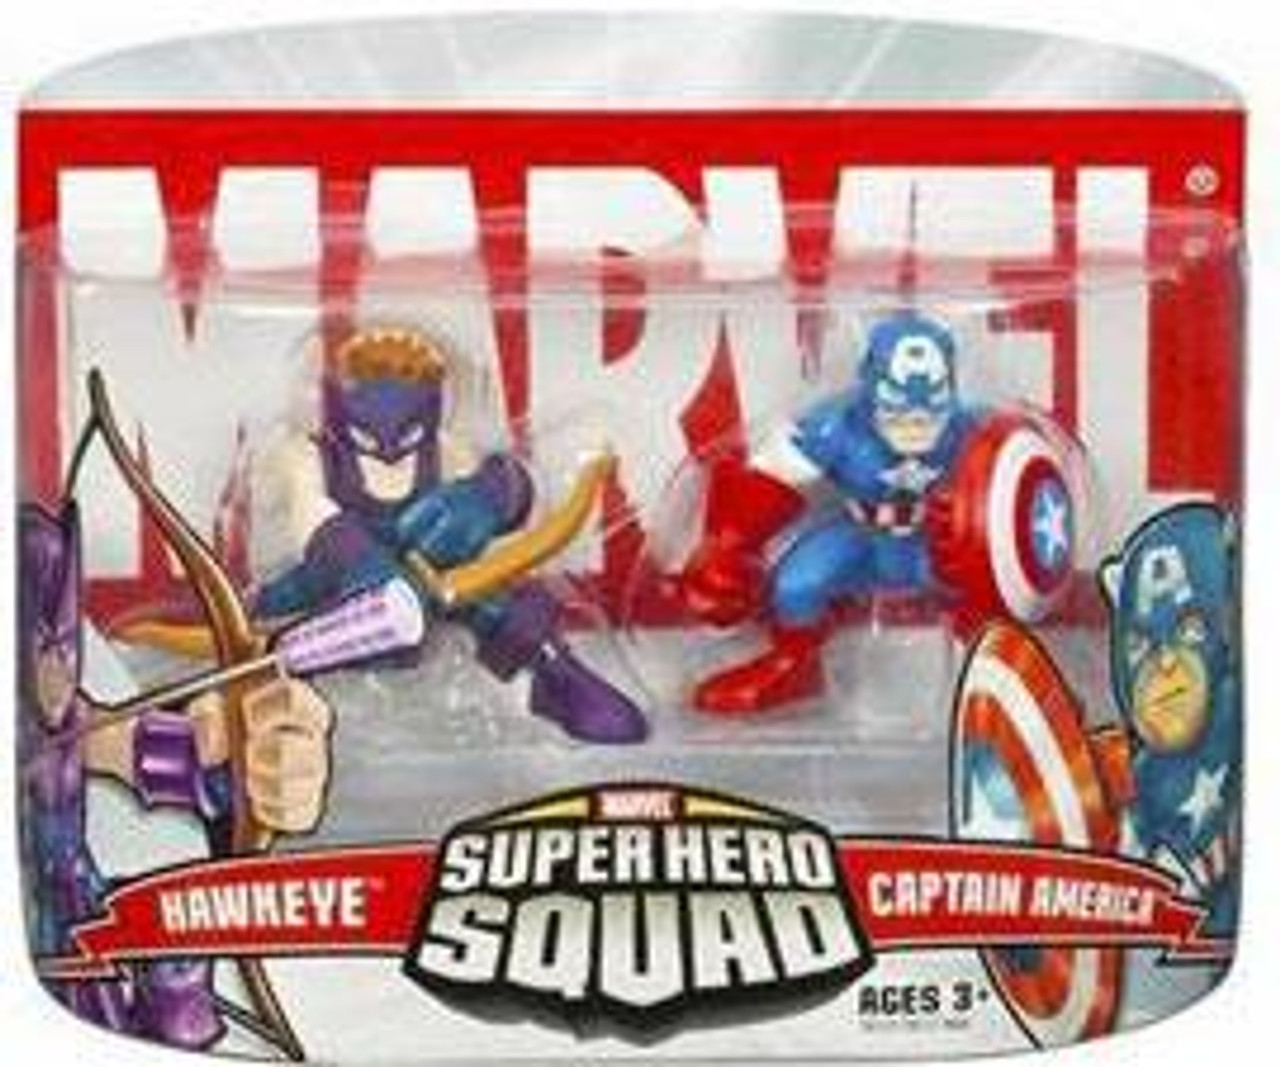 Marvel Super Hero Squad Series 1 Captain America & Hawkeye Action Figure 2-Pack [Yellowed Packaging]